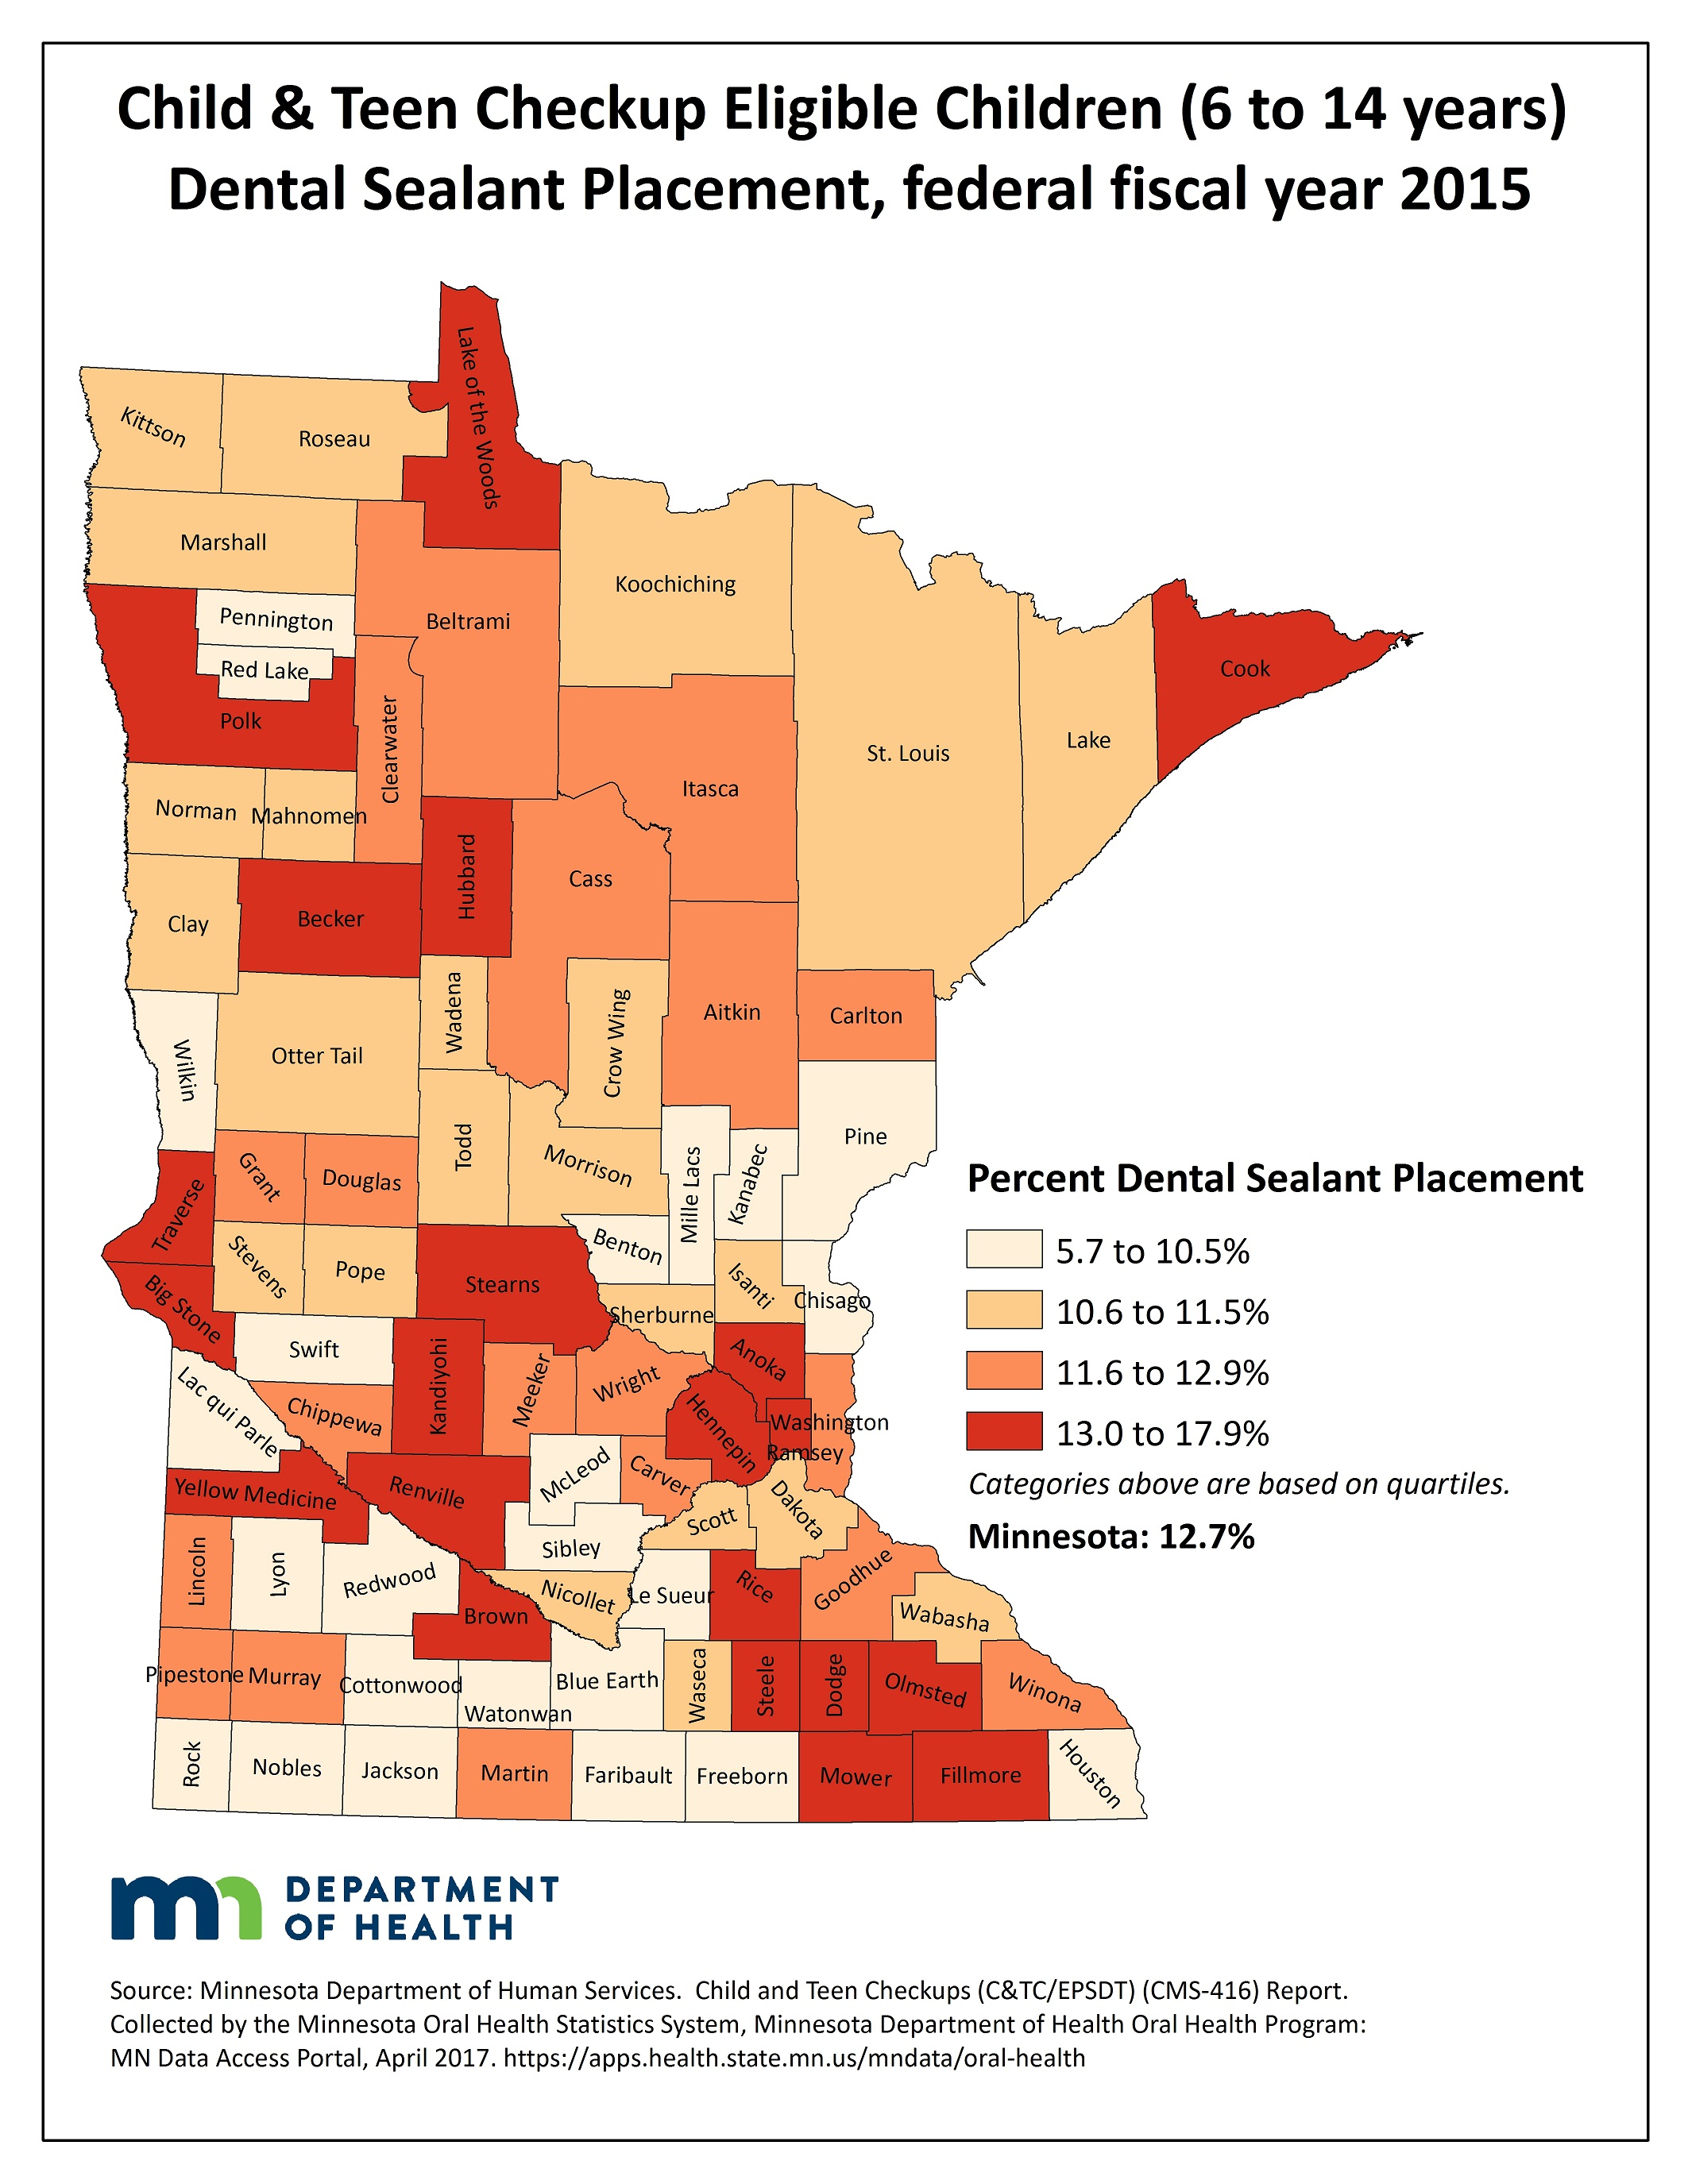 County map image Child & Teen Checkup Eligible Children (6 to 14 years) Dental Sealant Placement and link to PDF of the same